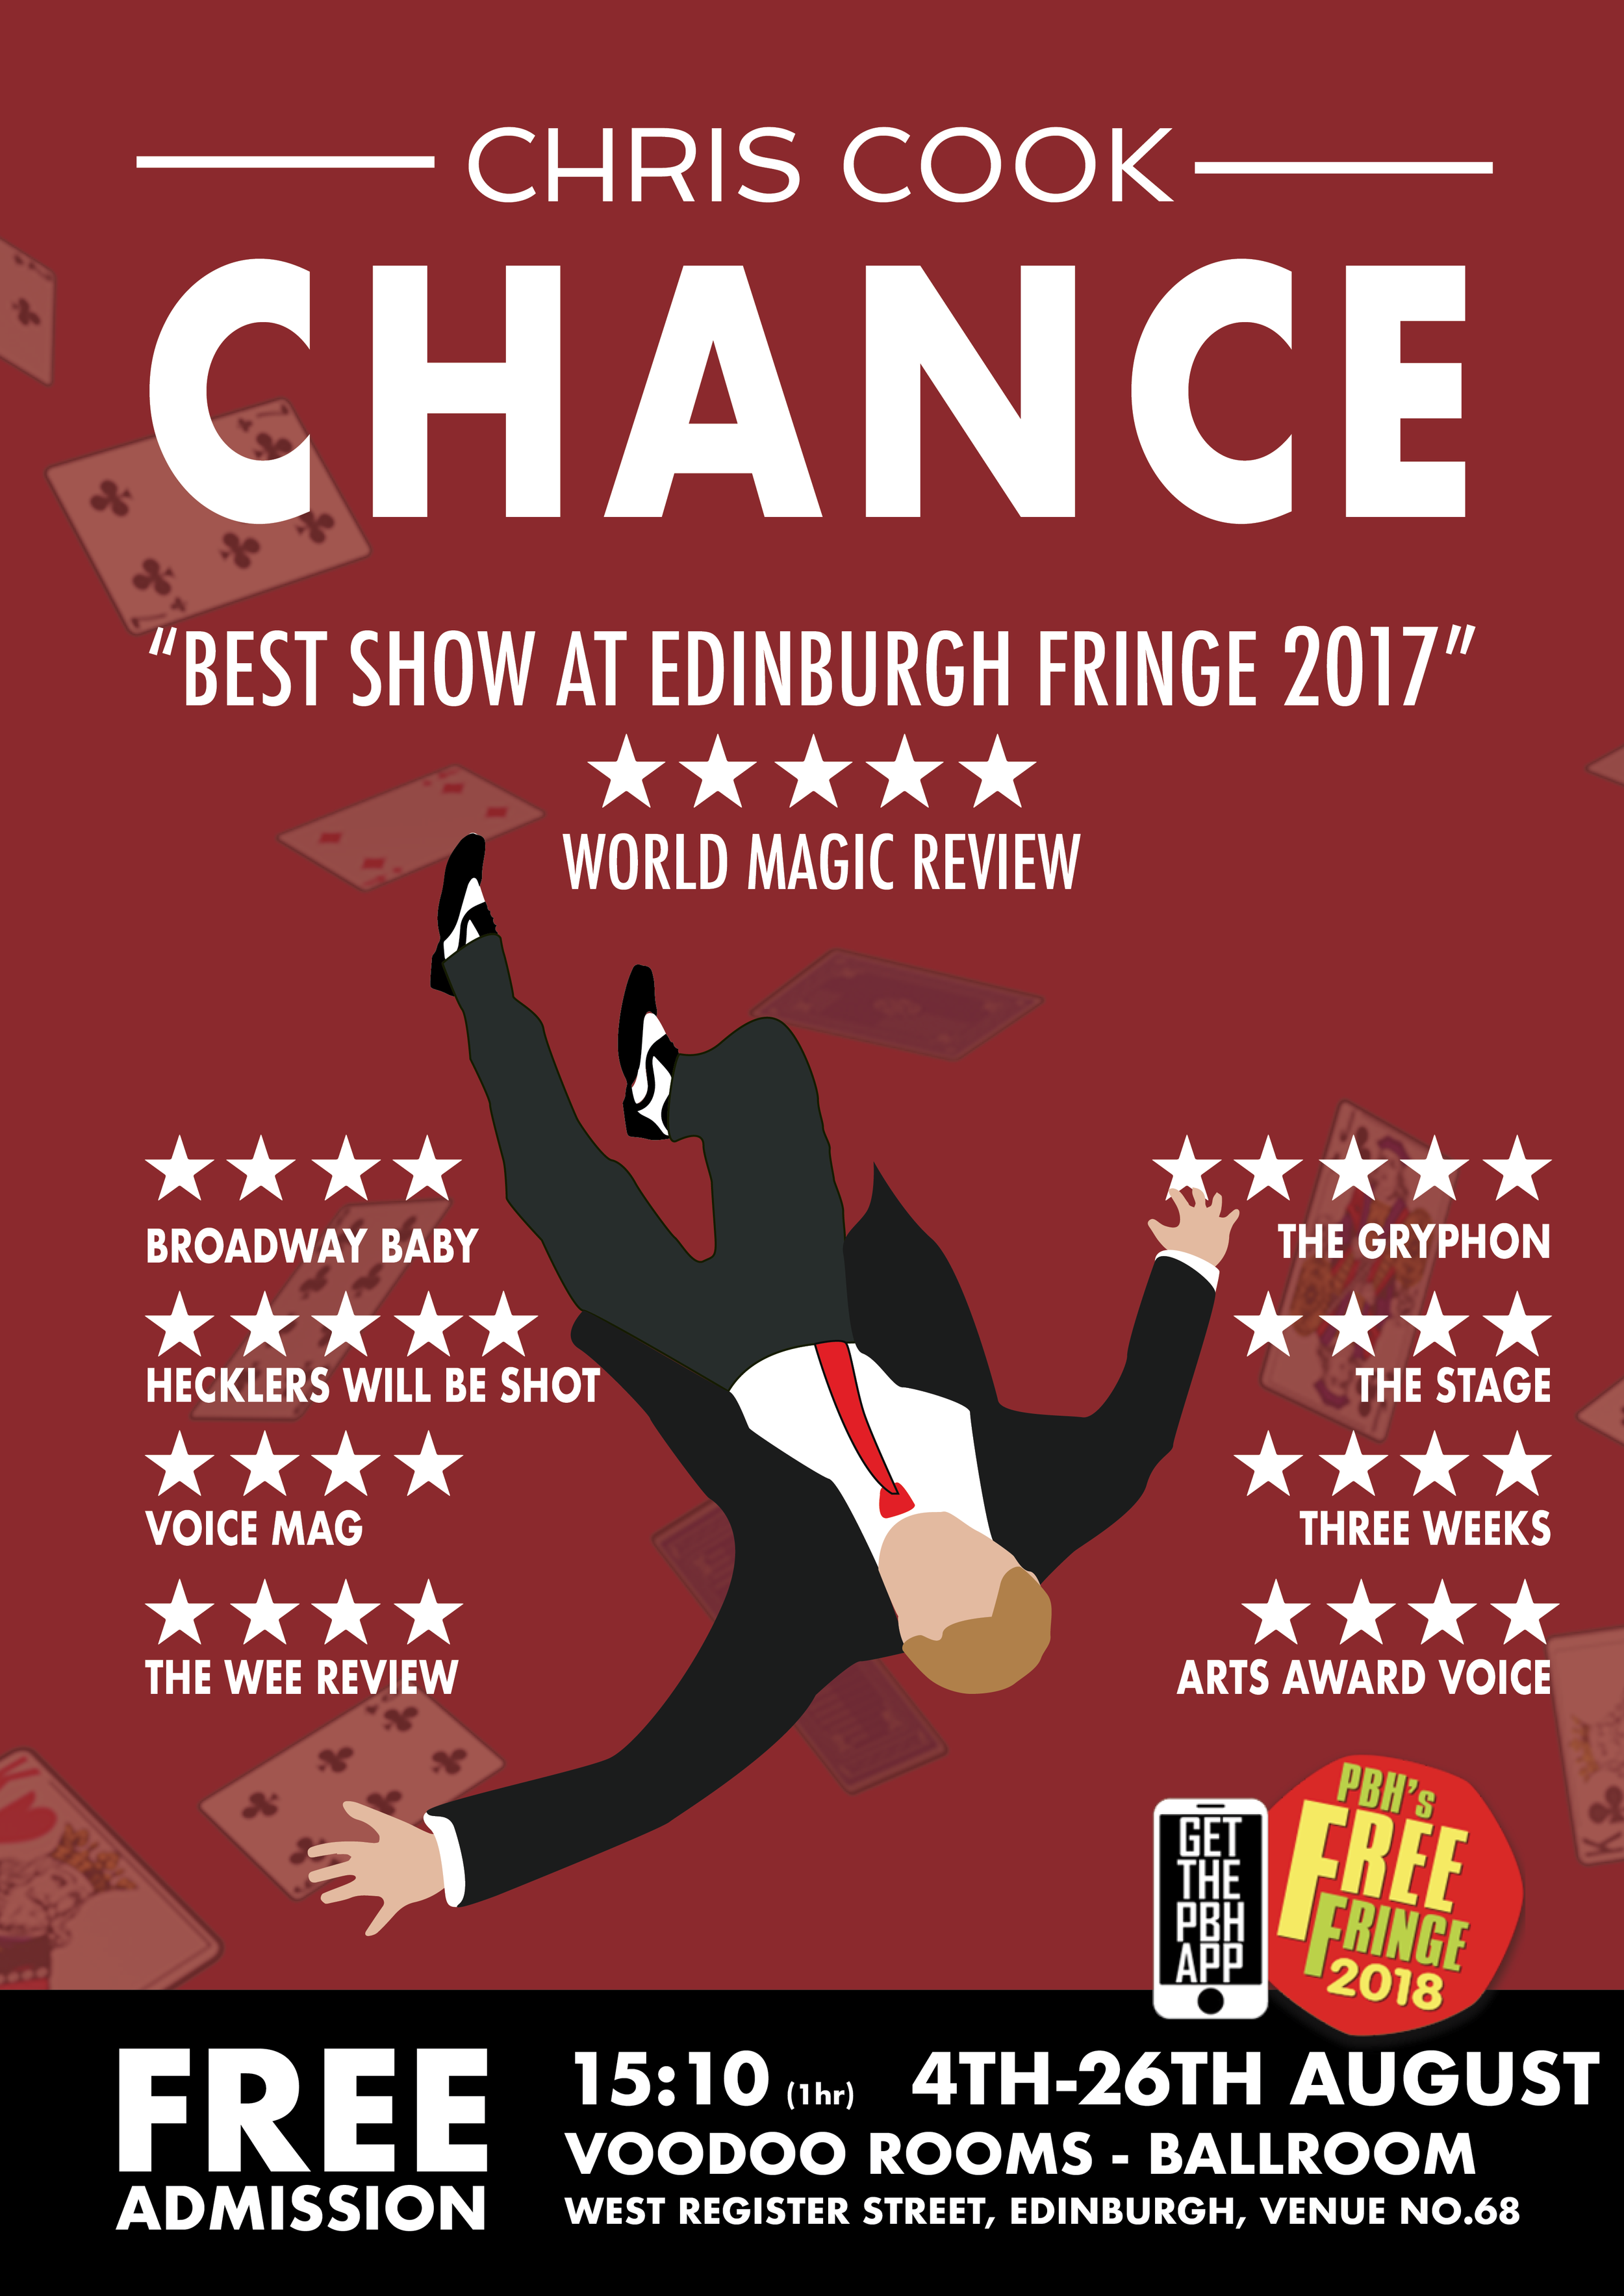 chris cook: chance poster magic